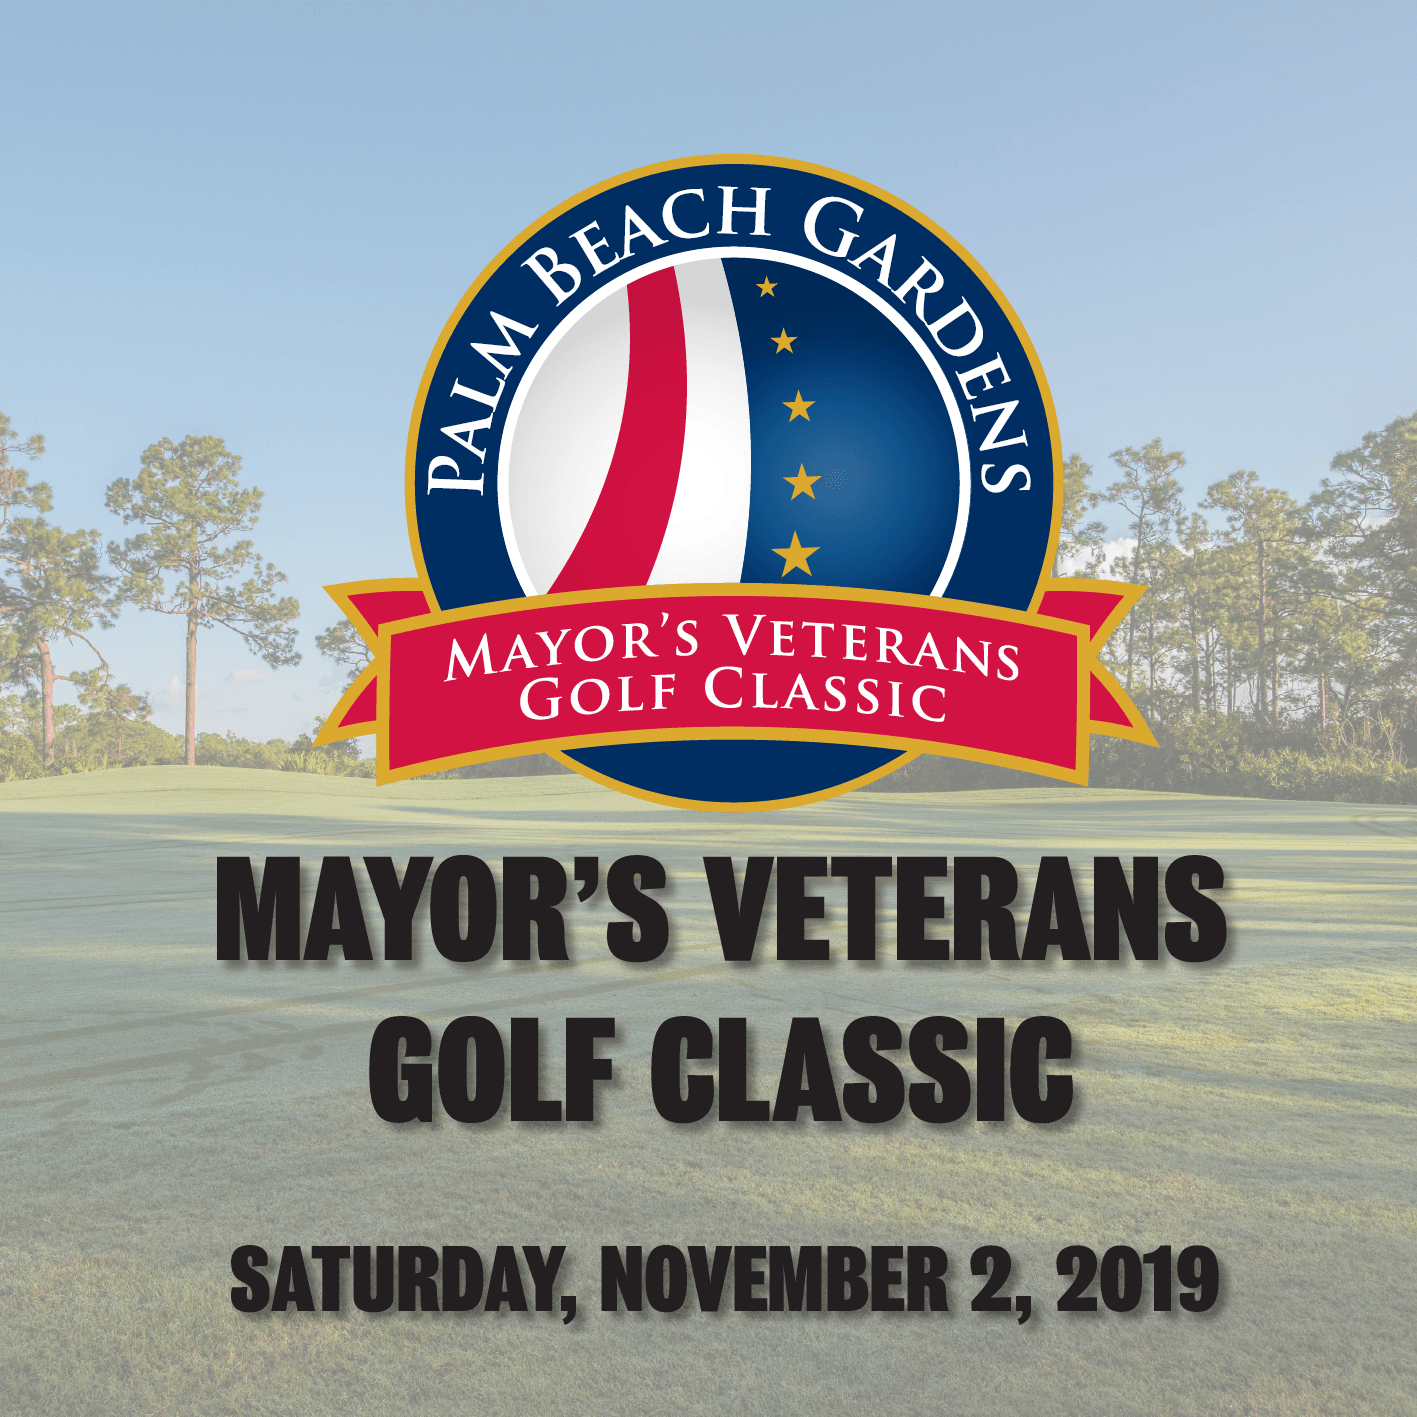 2019 Mayor's Veterans Golf Tournament, November 2, 2019.